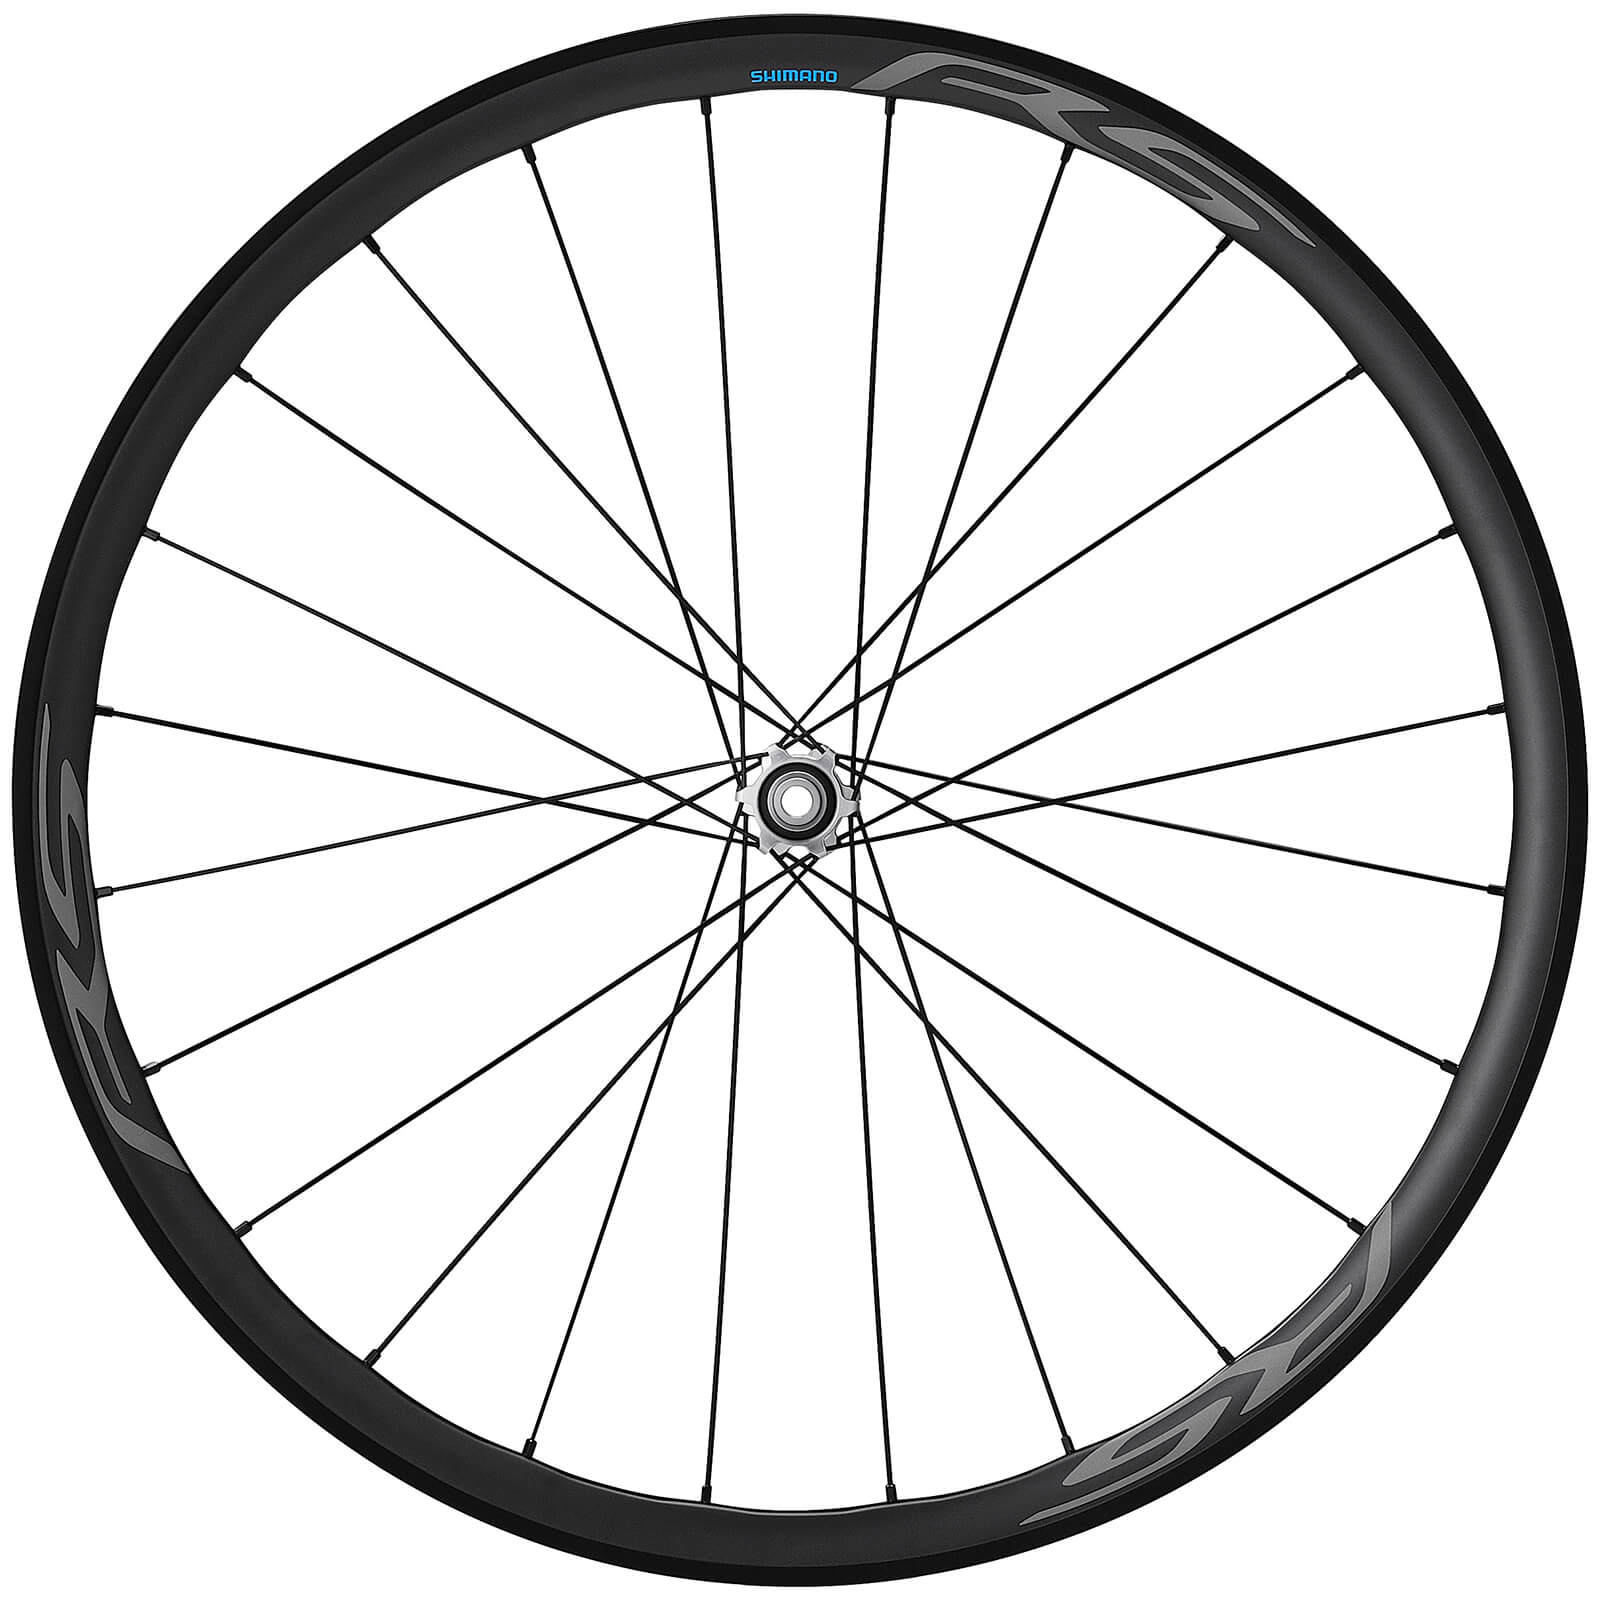 Shimano Ultegra RS770 C30 Tubeless Disc Wheelset